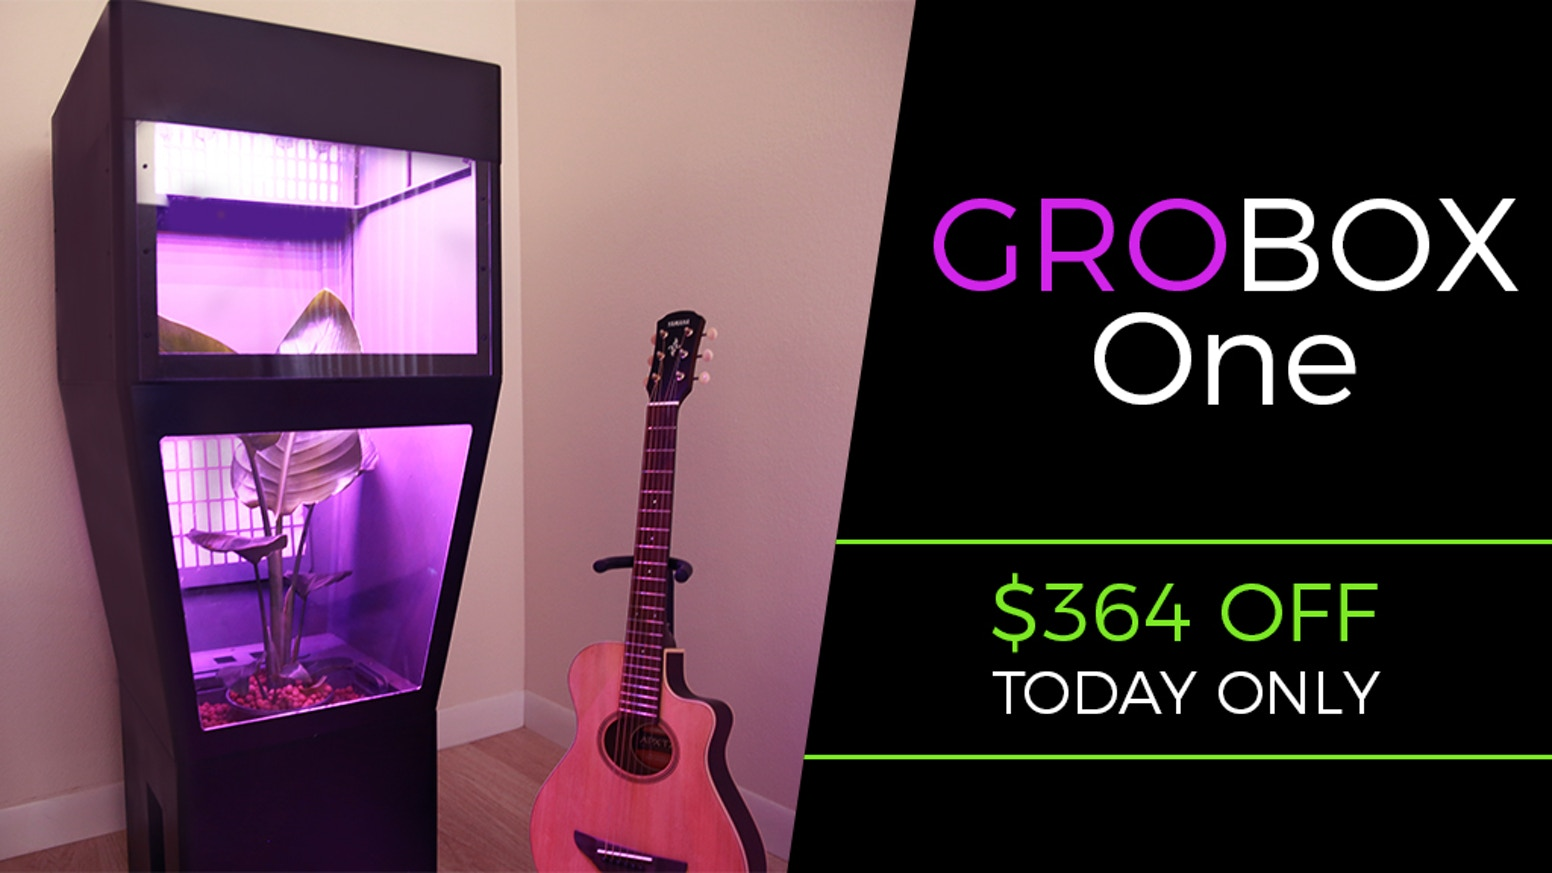 Your all in one, indoor hydroponics greenhouse that has everything you need. LEDs, automatic watering, and built-in carbon air filter